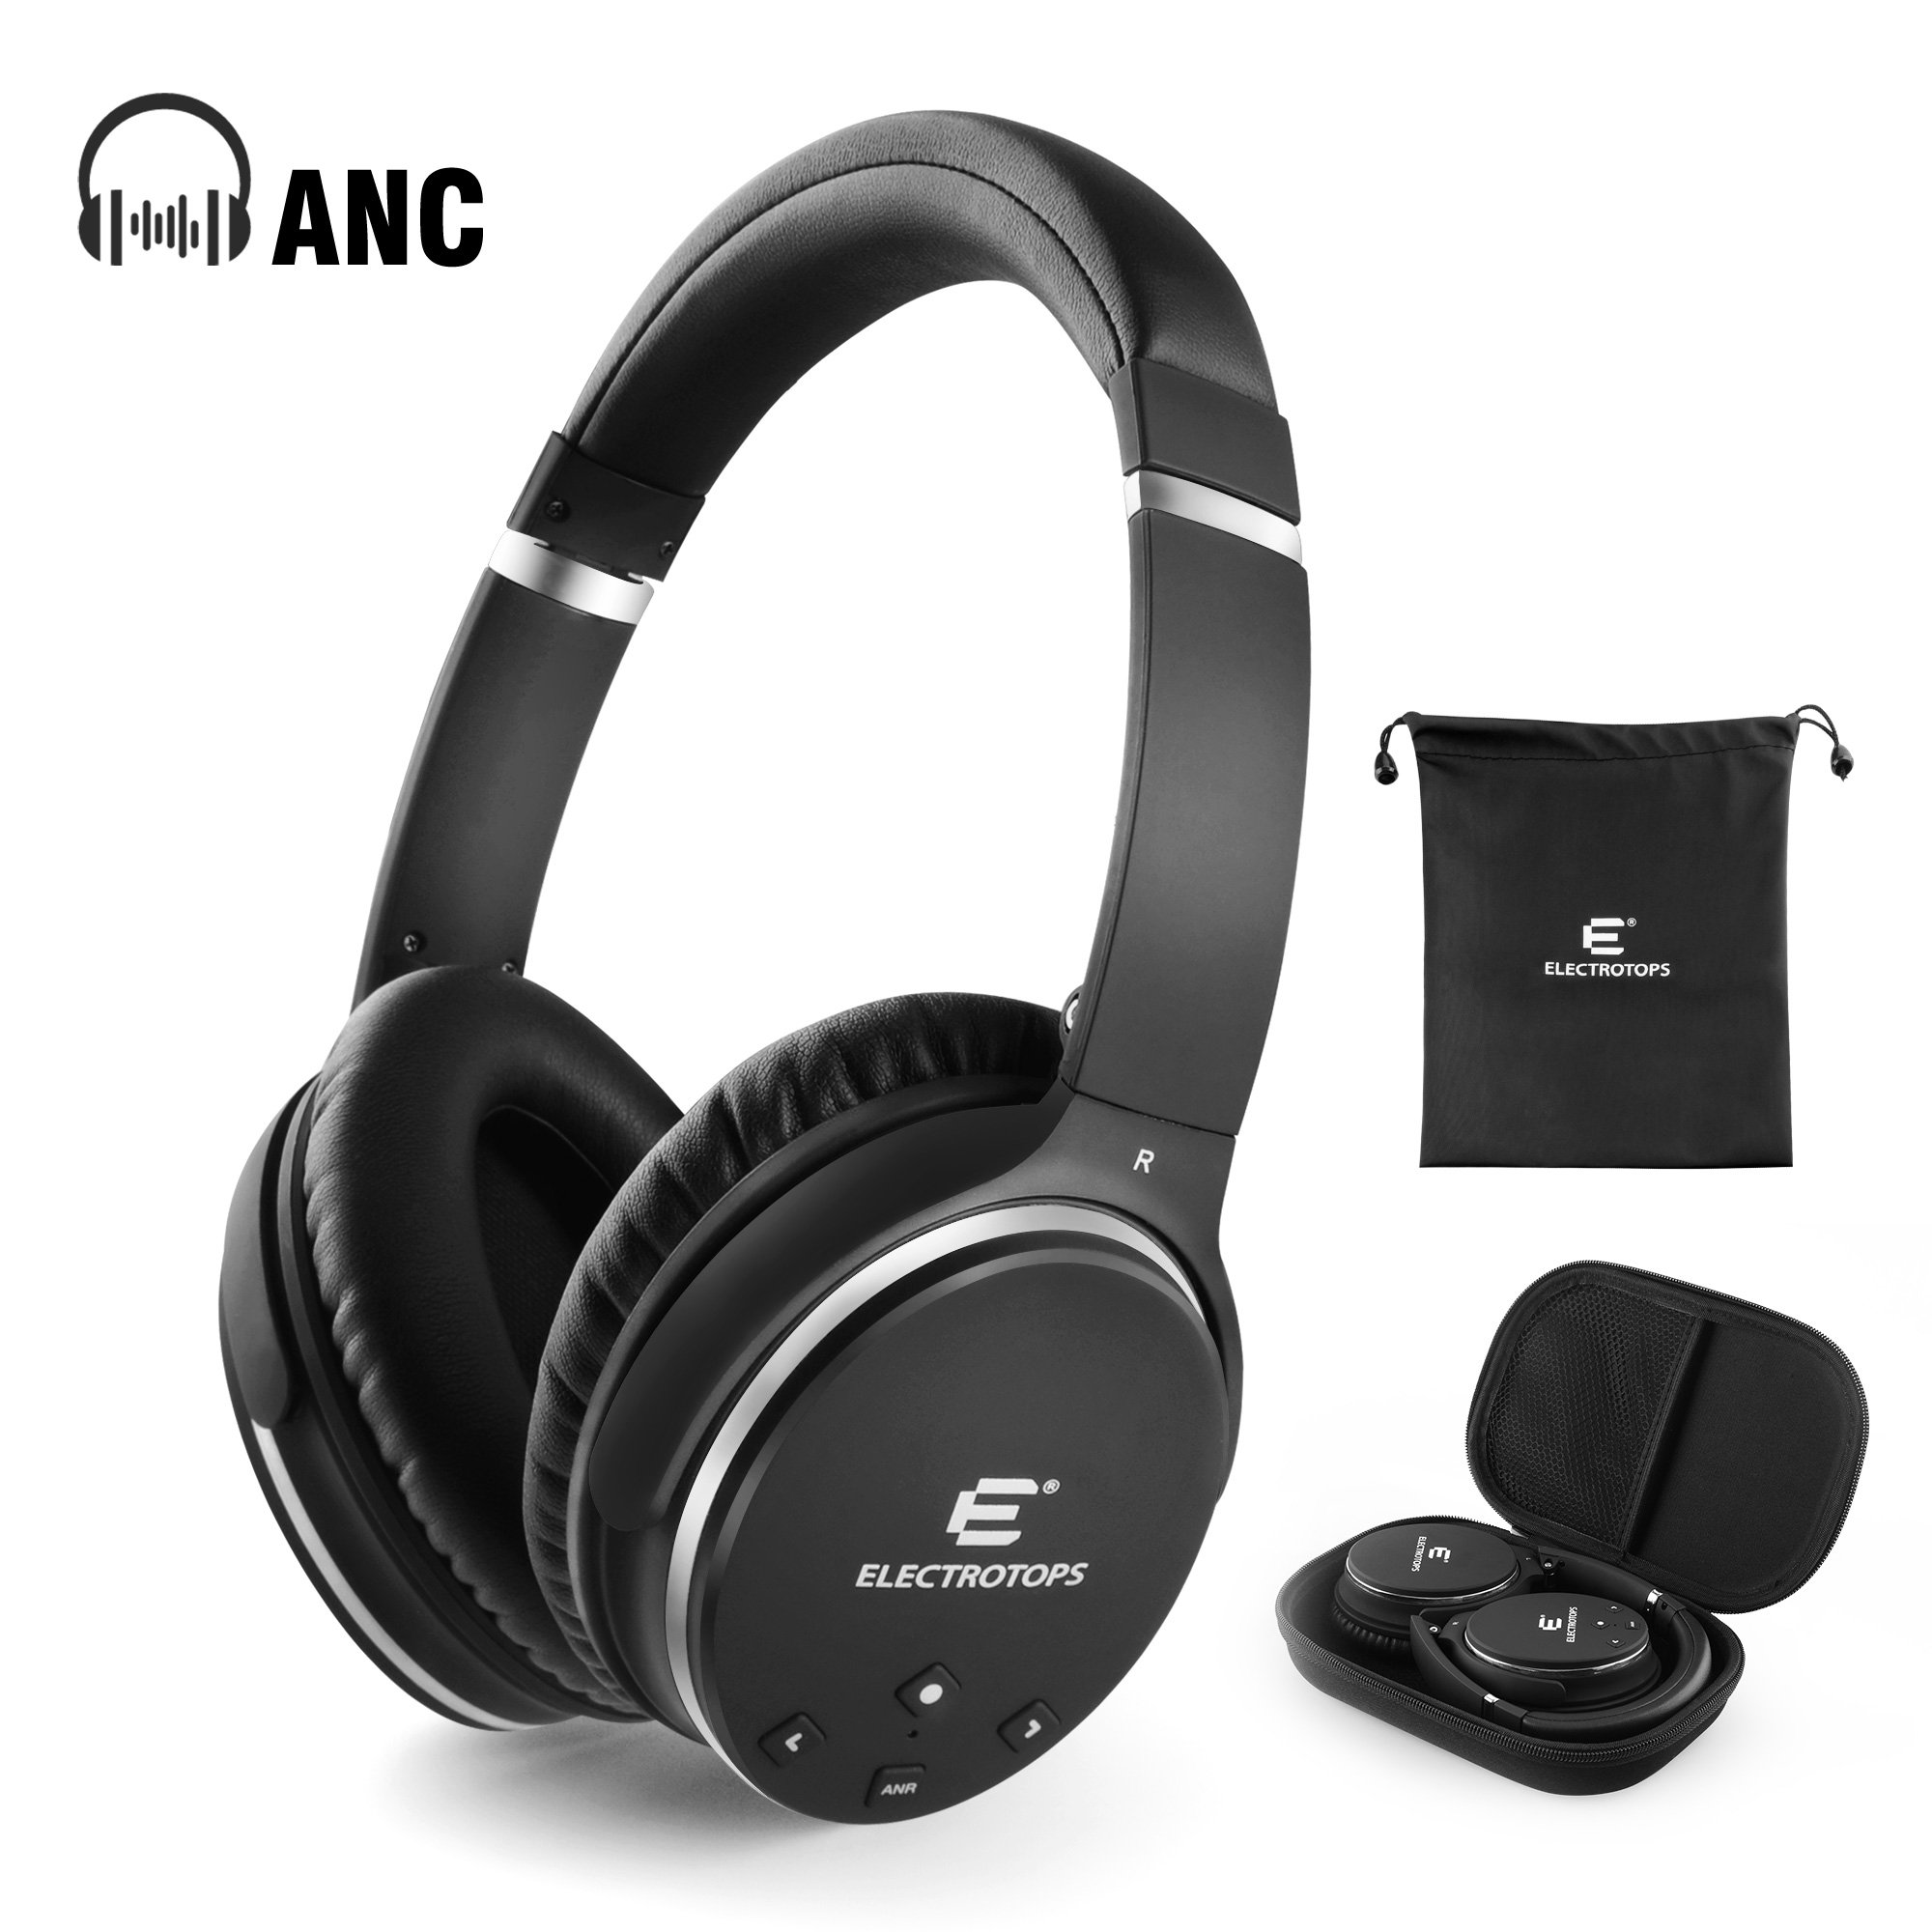 Active Noise Cancelling Headphones 4.1 Bluetooth Wireless Over-Ear Headphones CSR Chip Protein Material 90°Adjustable Ear Cover